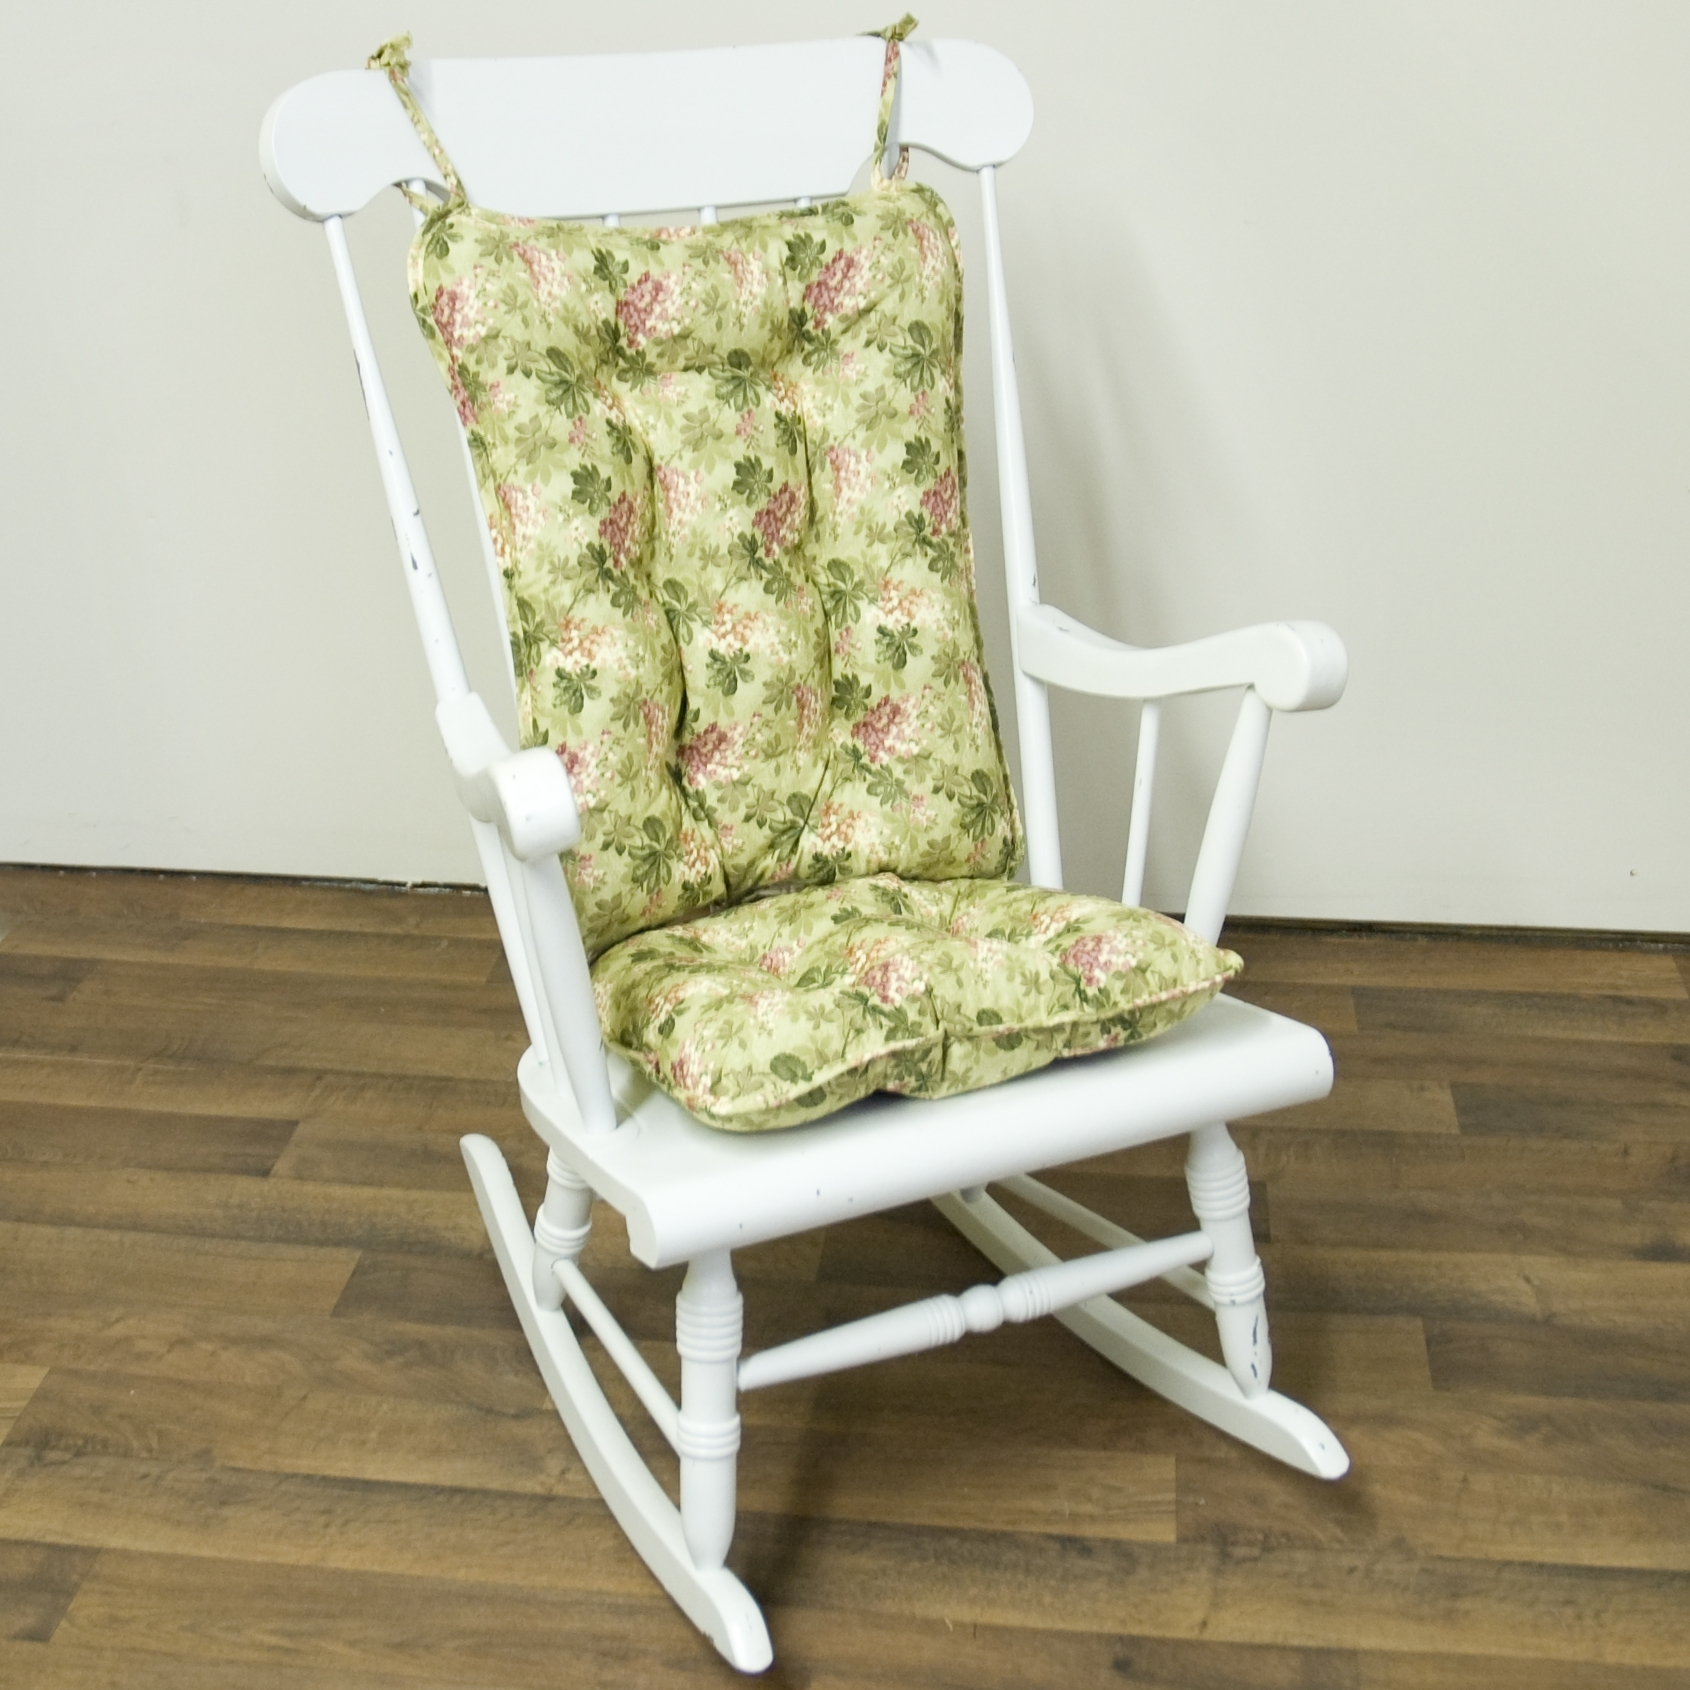 Latest Outdoor Rocking Chair Cushions Flower : Beautiful Outdoor Rocking Intended For Rocking Chairs With Cushions (View 6 of 15)